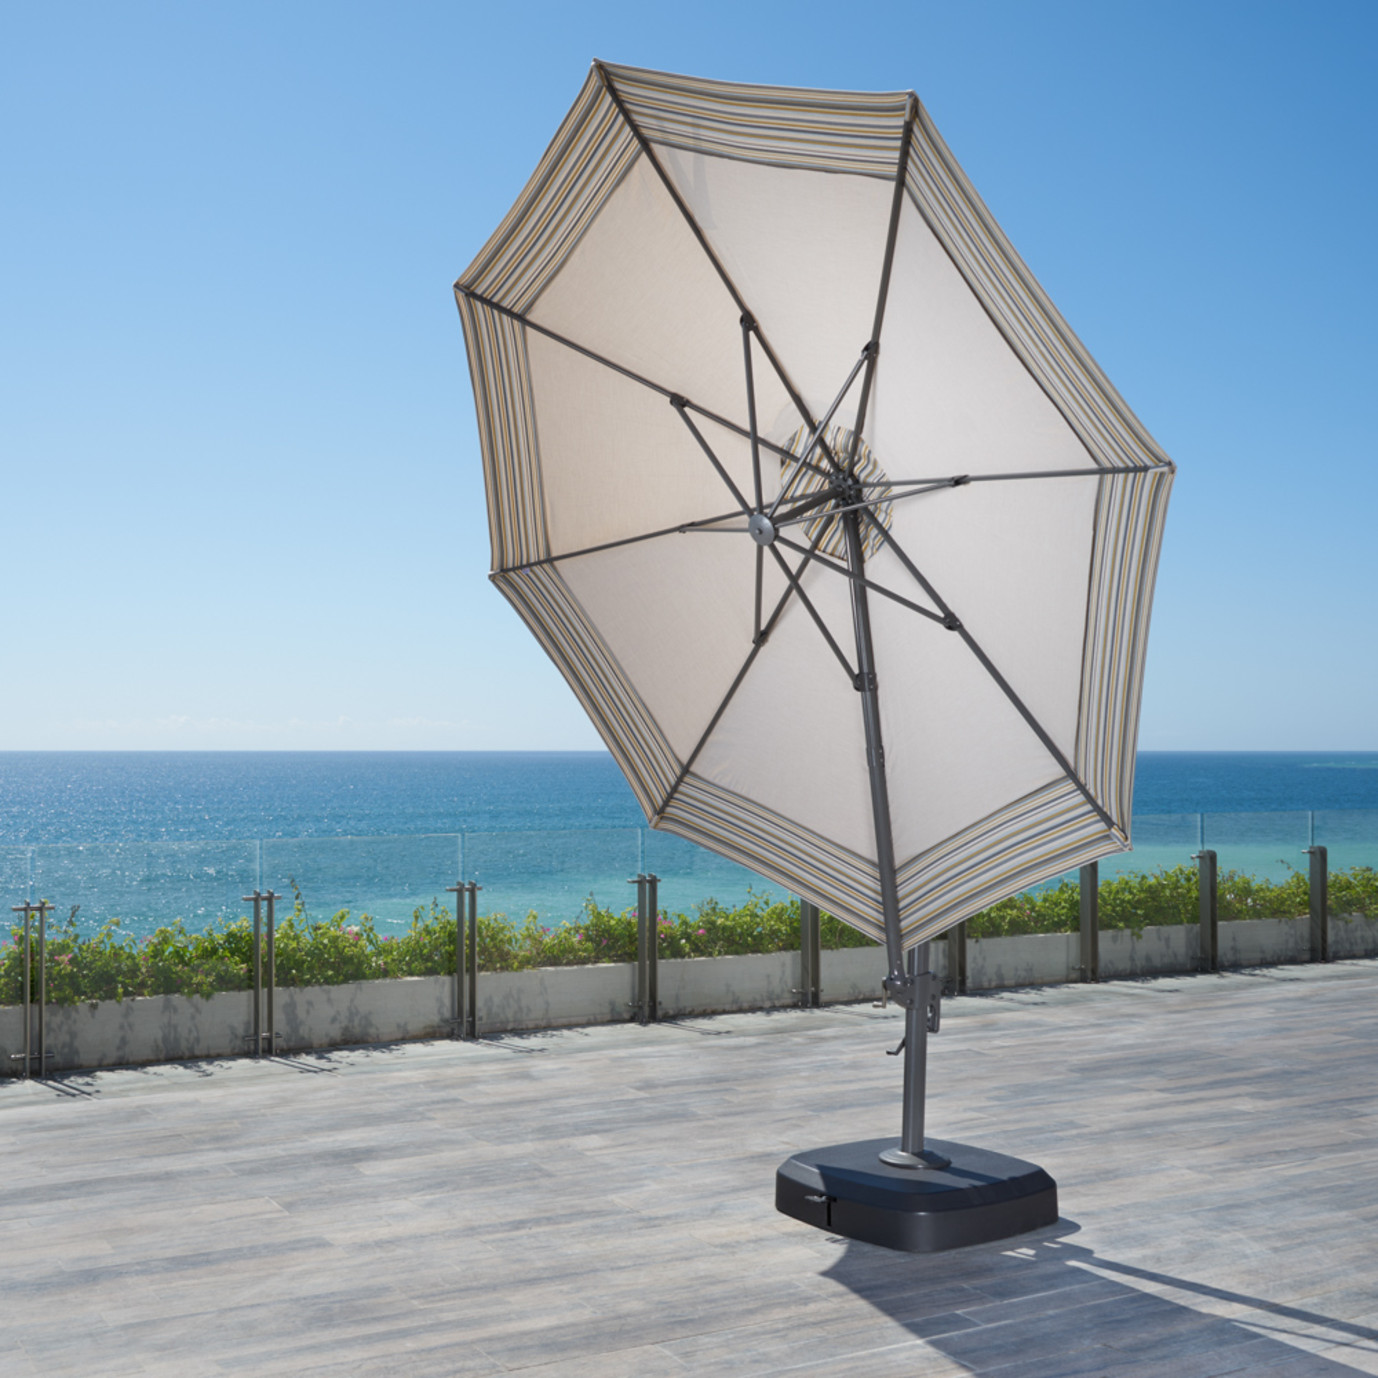 Vistano® 11ft Round Grand Umbrella - Canvas Flax